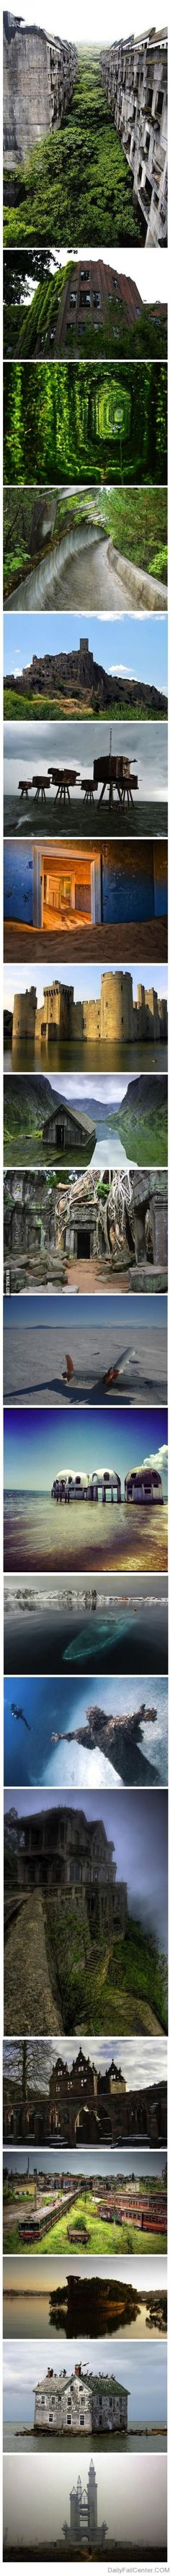 20 most awesome abandoned places - I want to photograph them alll.....